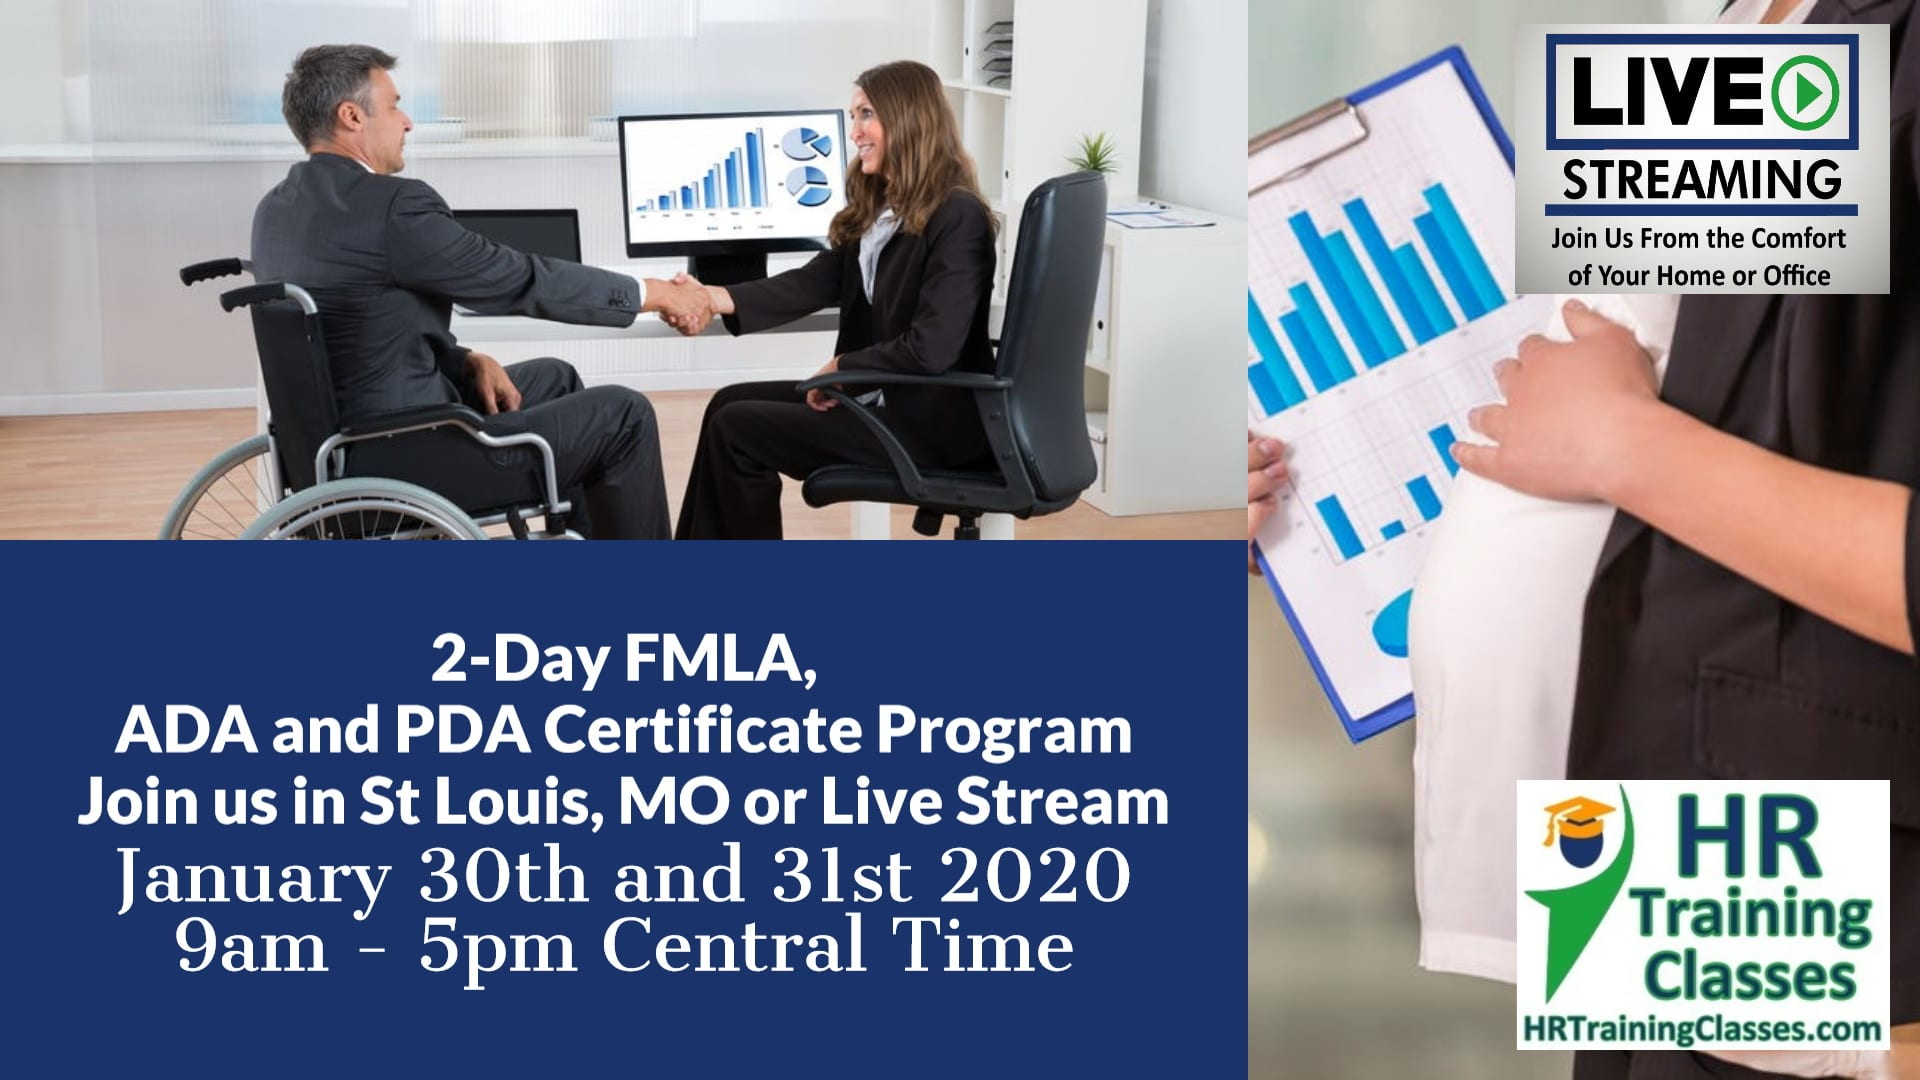 2-Day FMLA, ADA and PDA Certificate Program (Starts 1/30/2020)